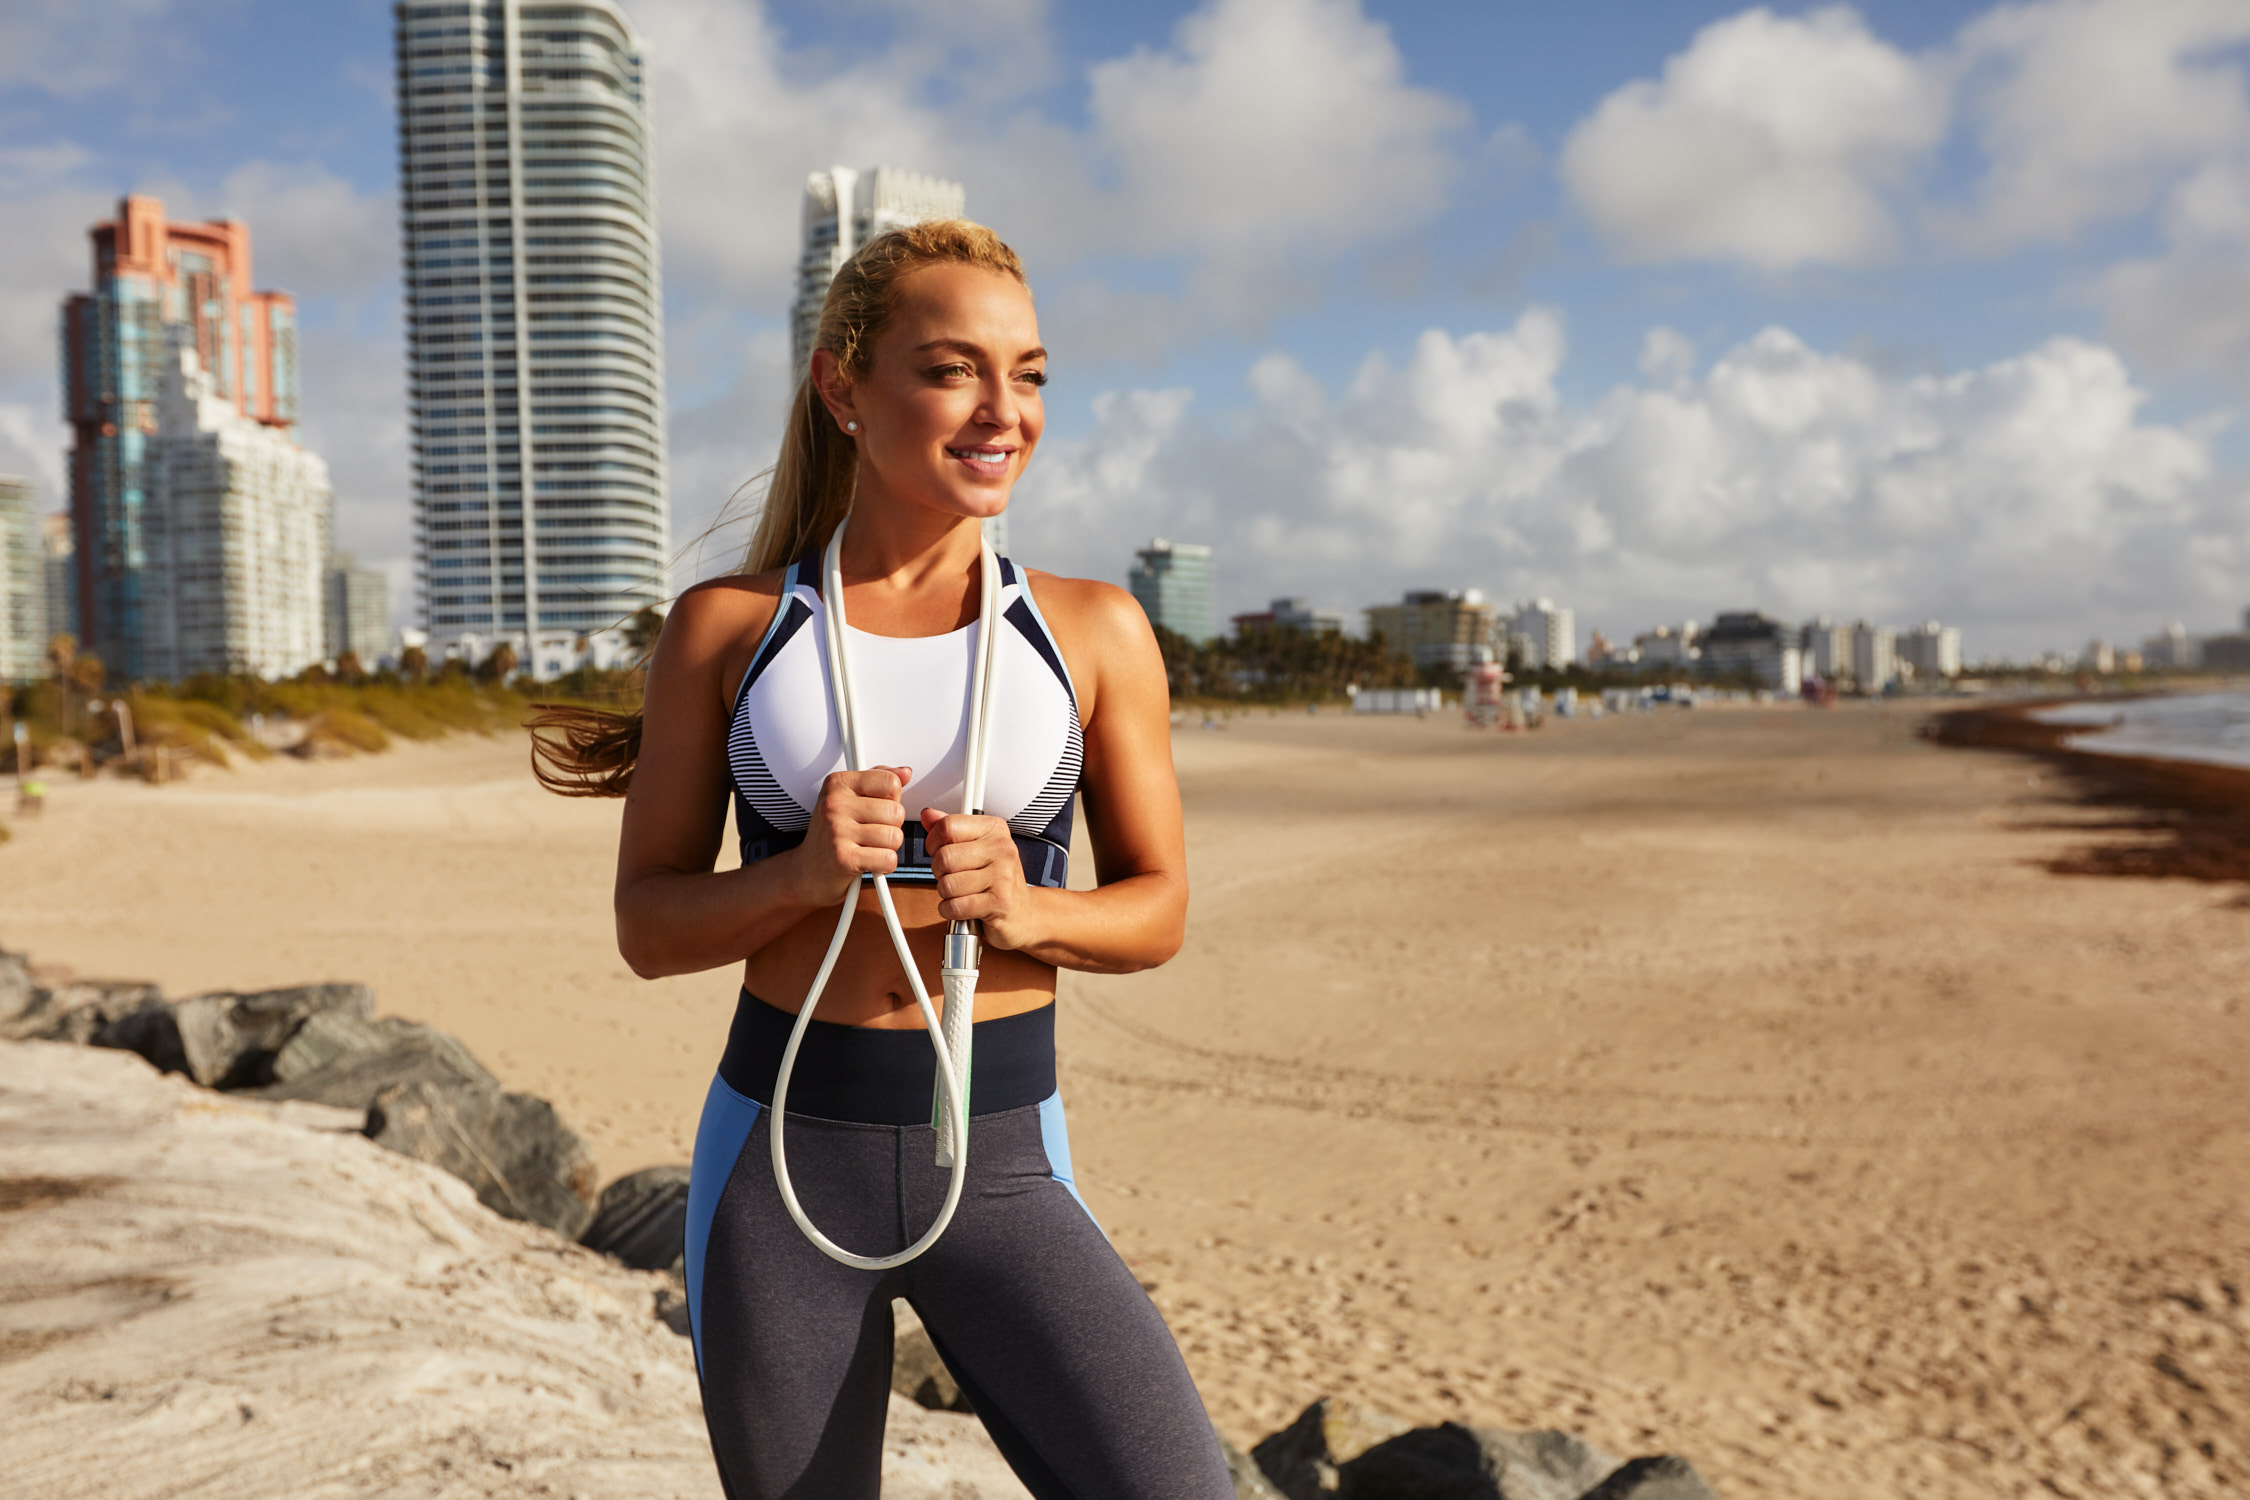 GET THE GLOSS Magazine - April 2018 issue, The 8 best cardio picks if you don't enjoy running